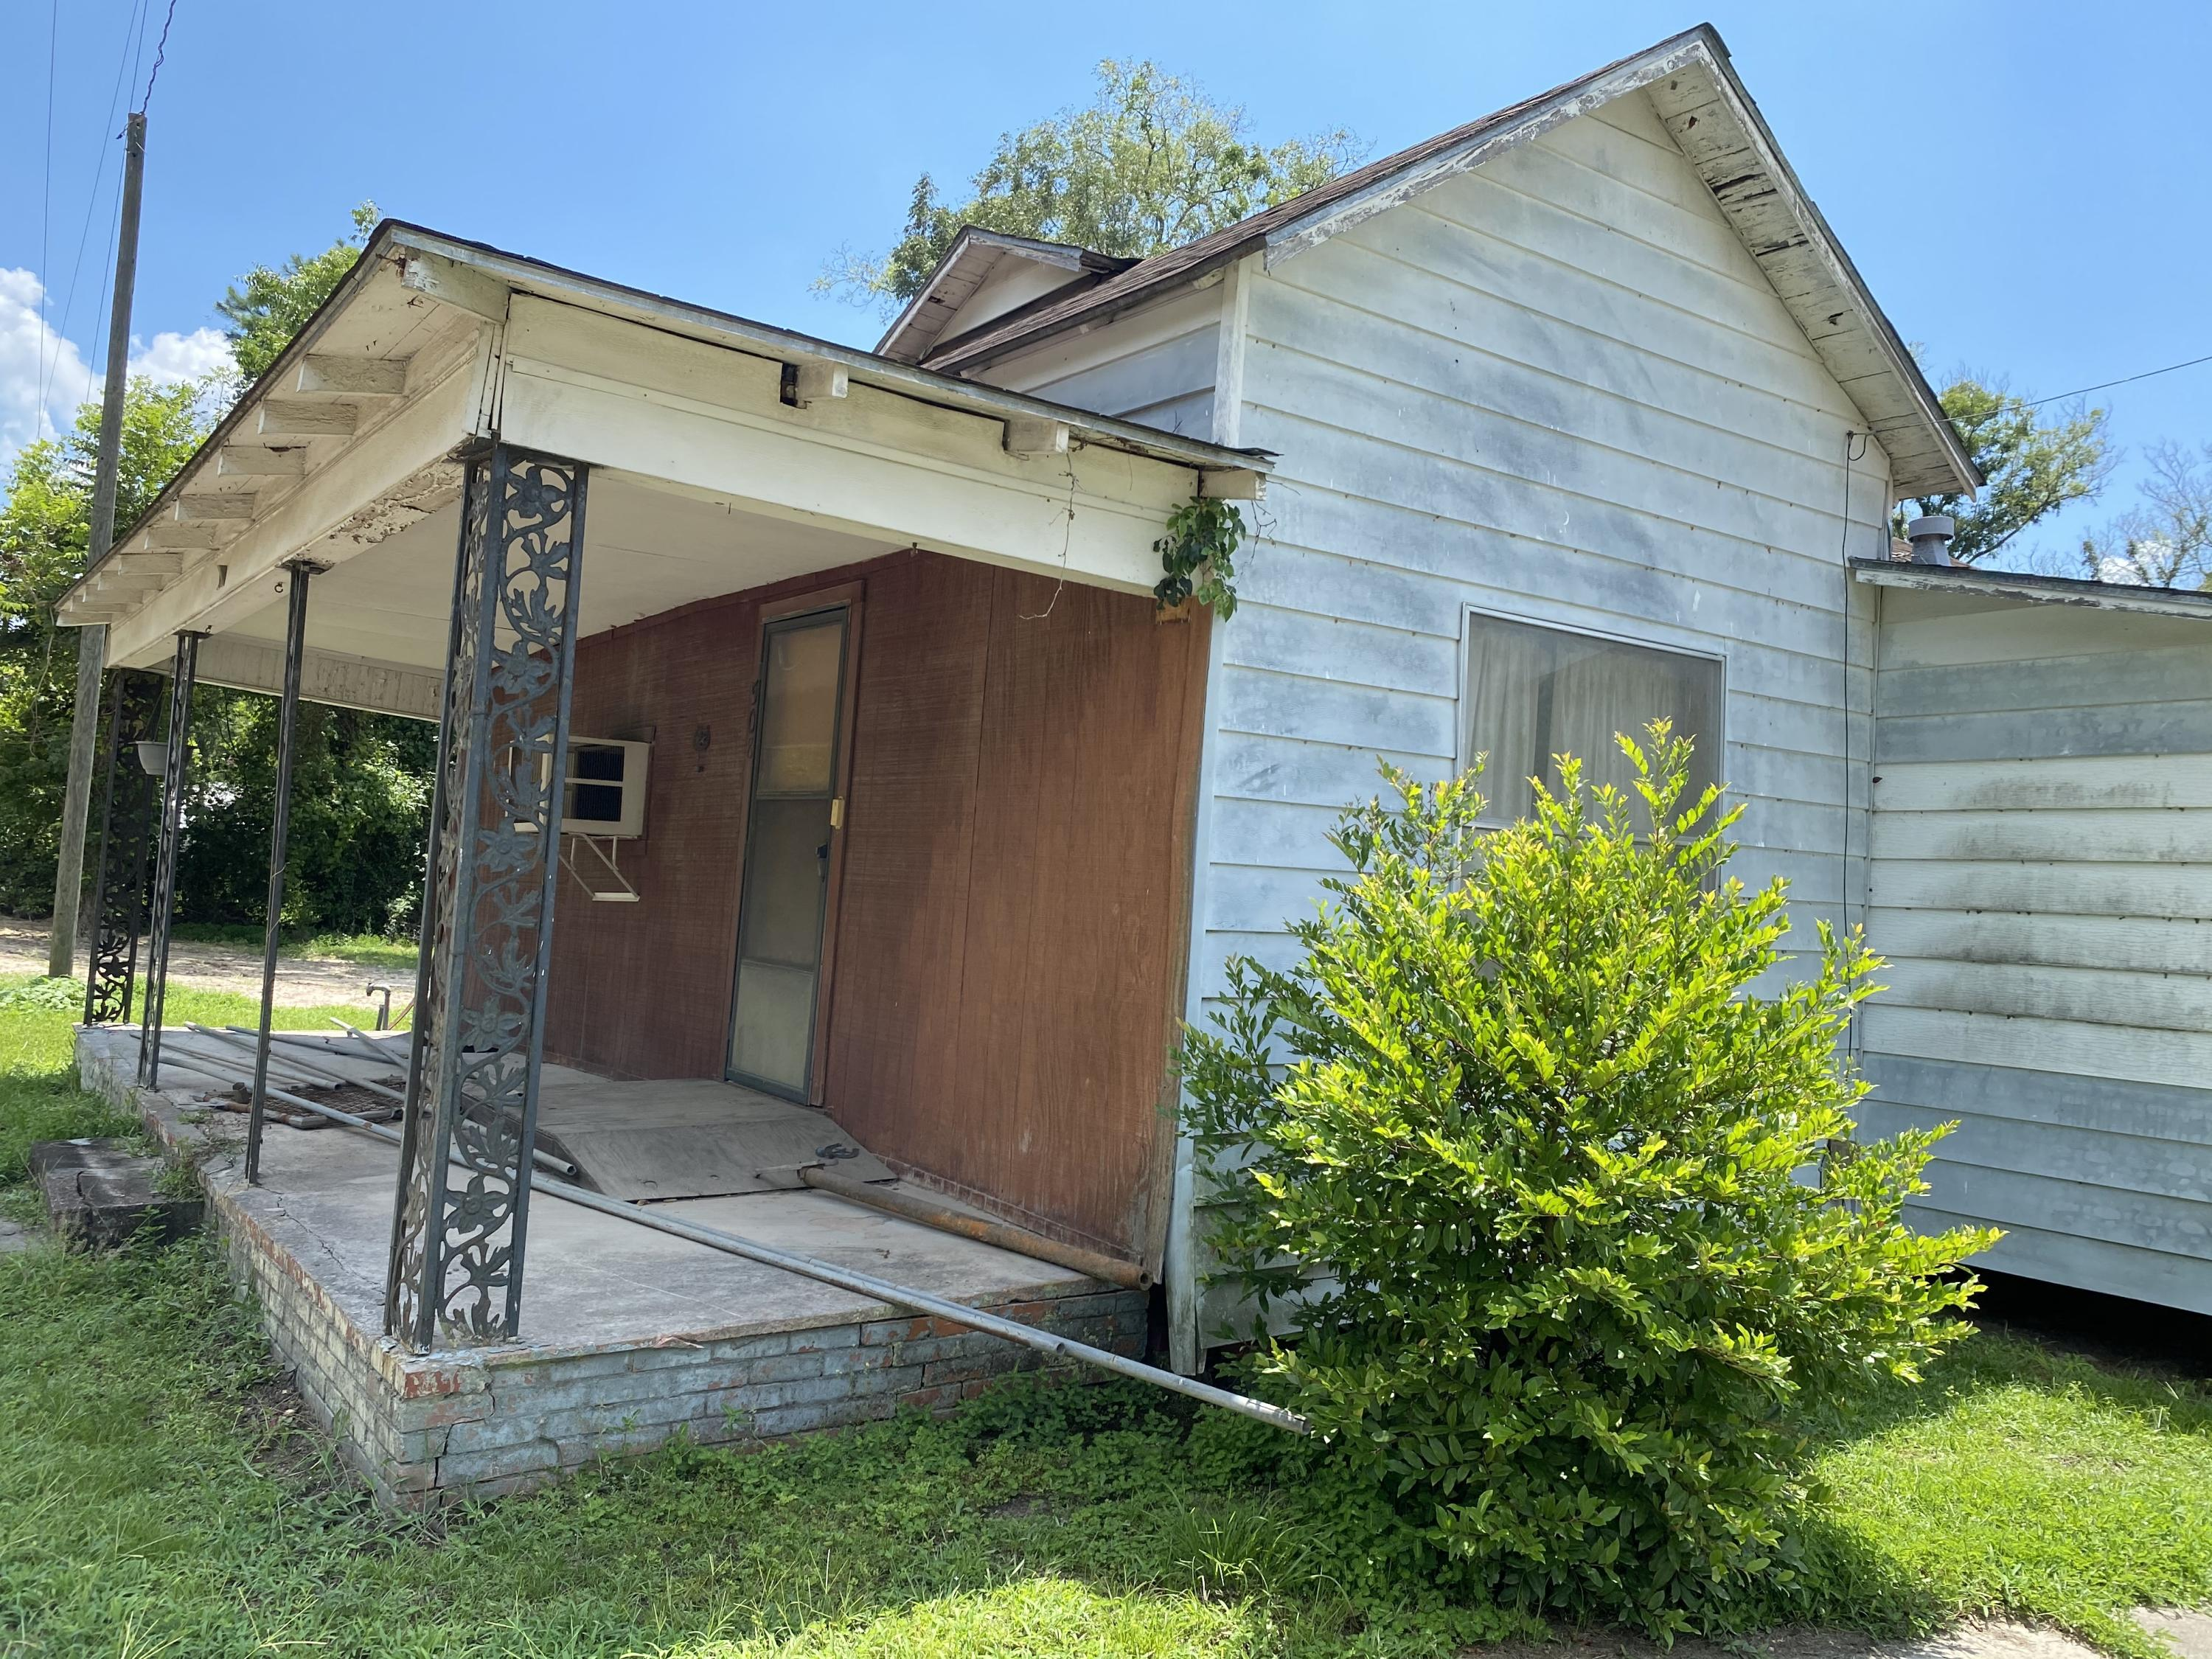 Merryville home for sale, TBD 625 Spikes ST, Merryville LA - $25,000